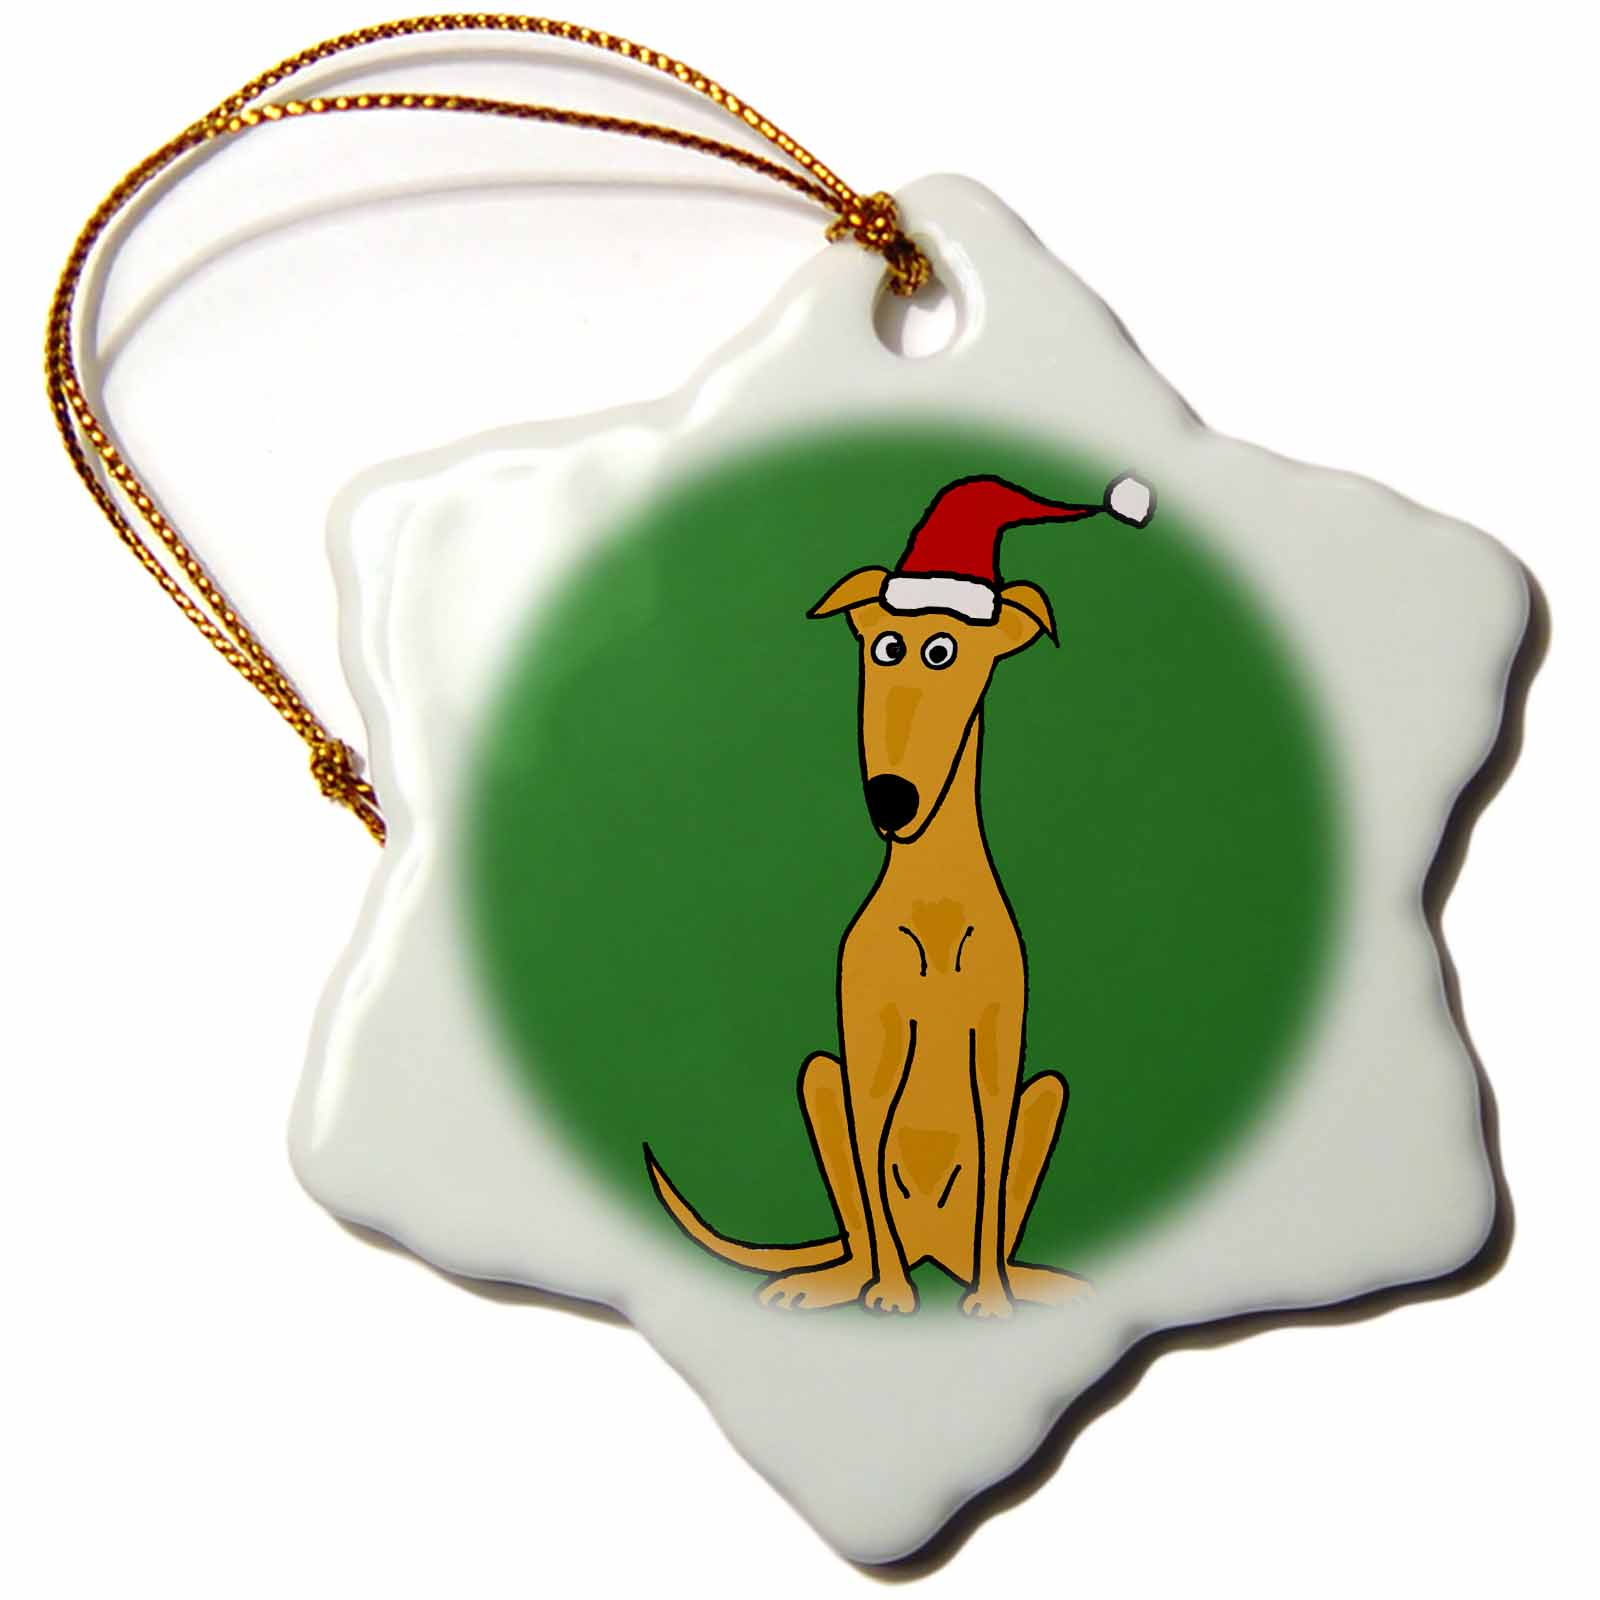 3dRose Funny Greyhound Puppy Dog in Santa Hat Christmas Art, Snowflake Ornament, Porcelain, 3-inch